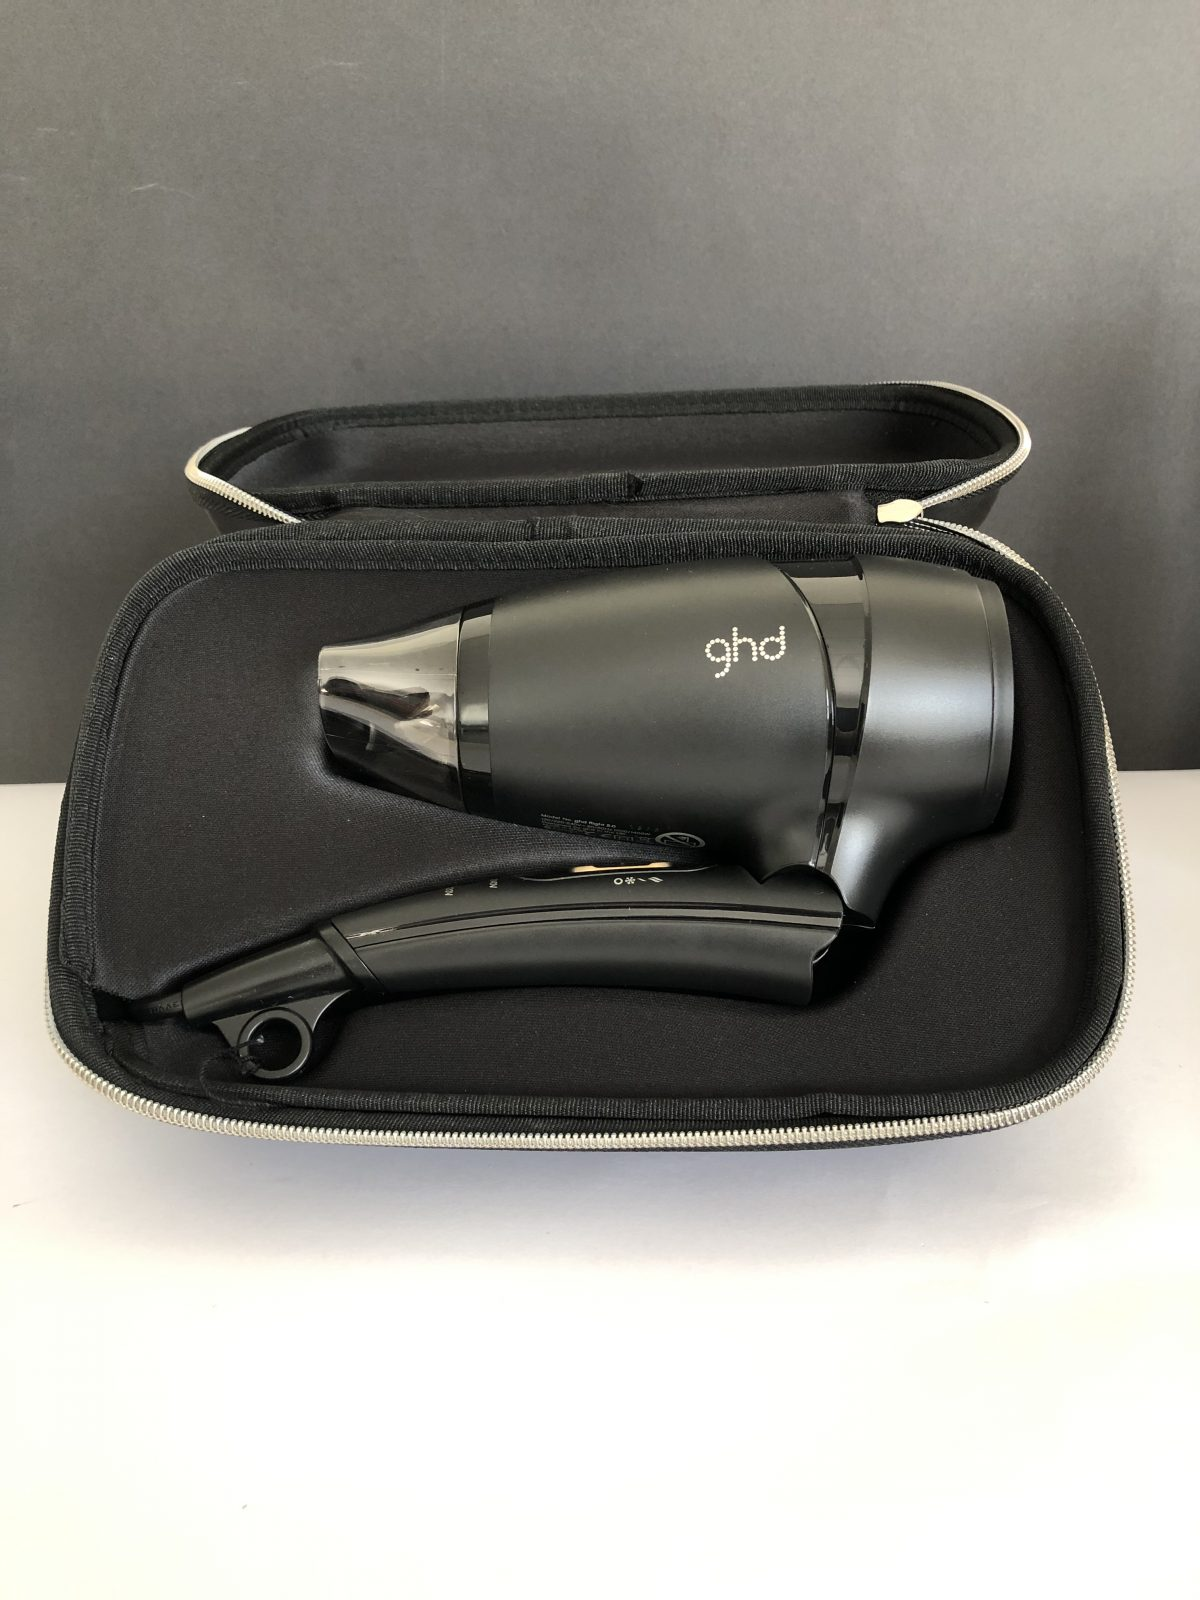 GHD Flight